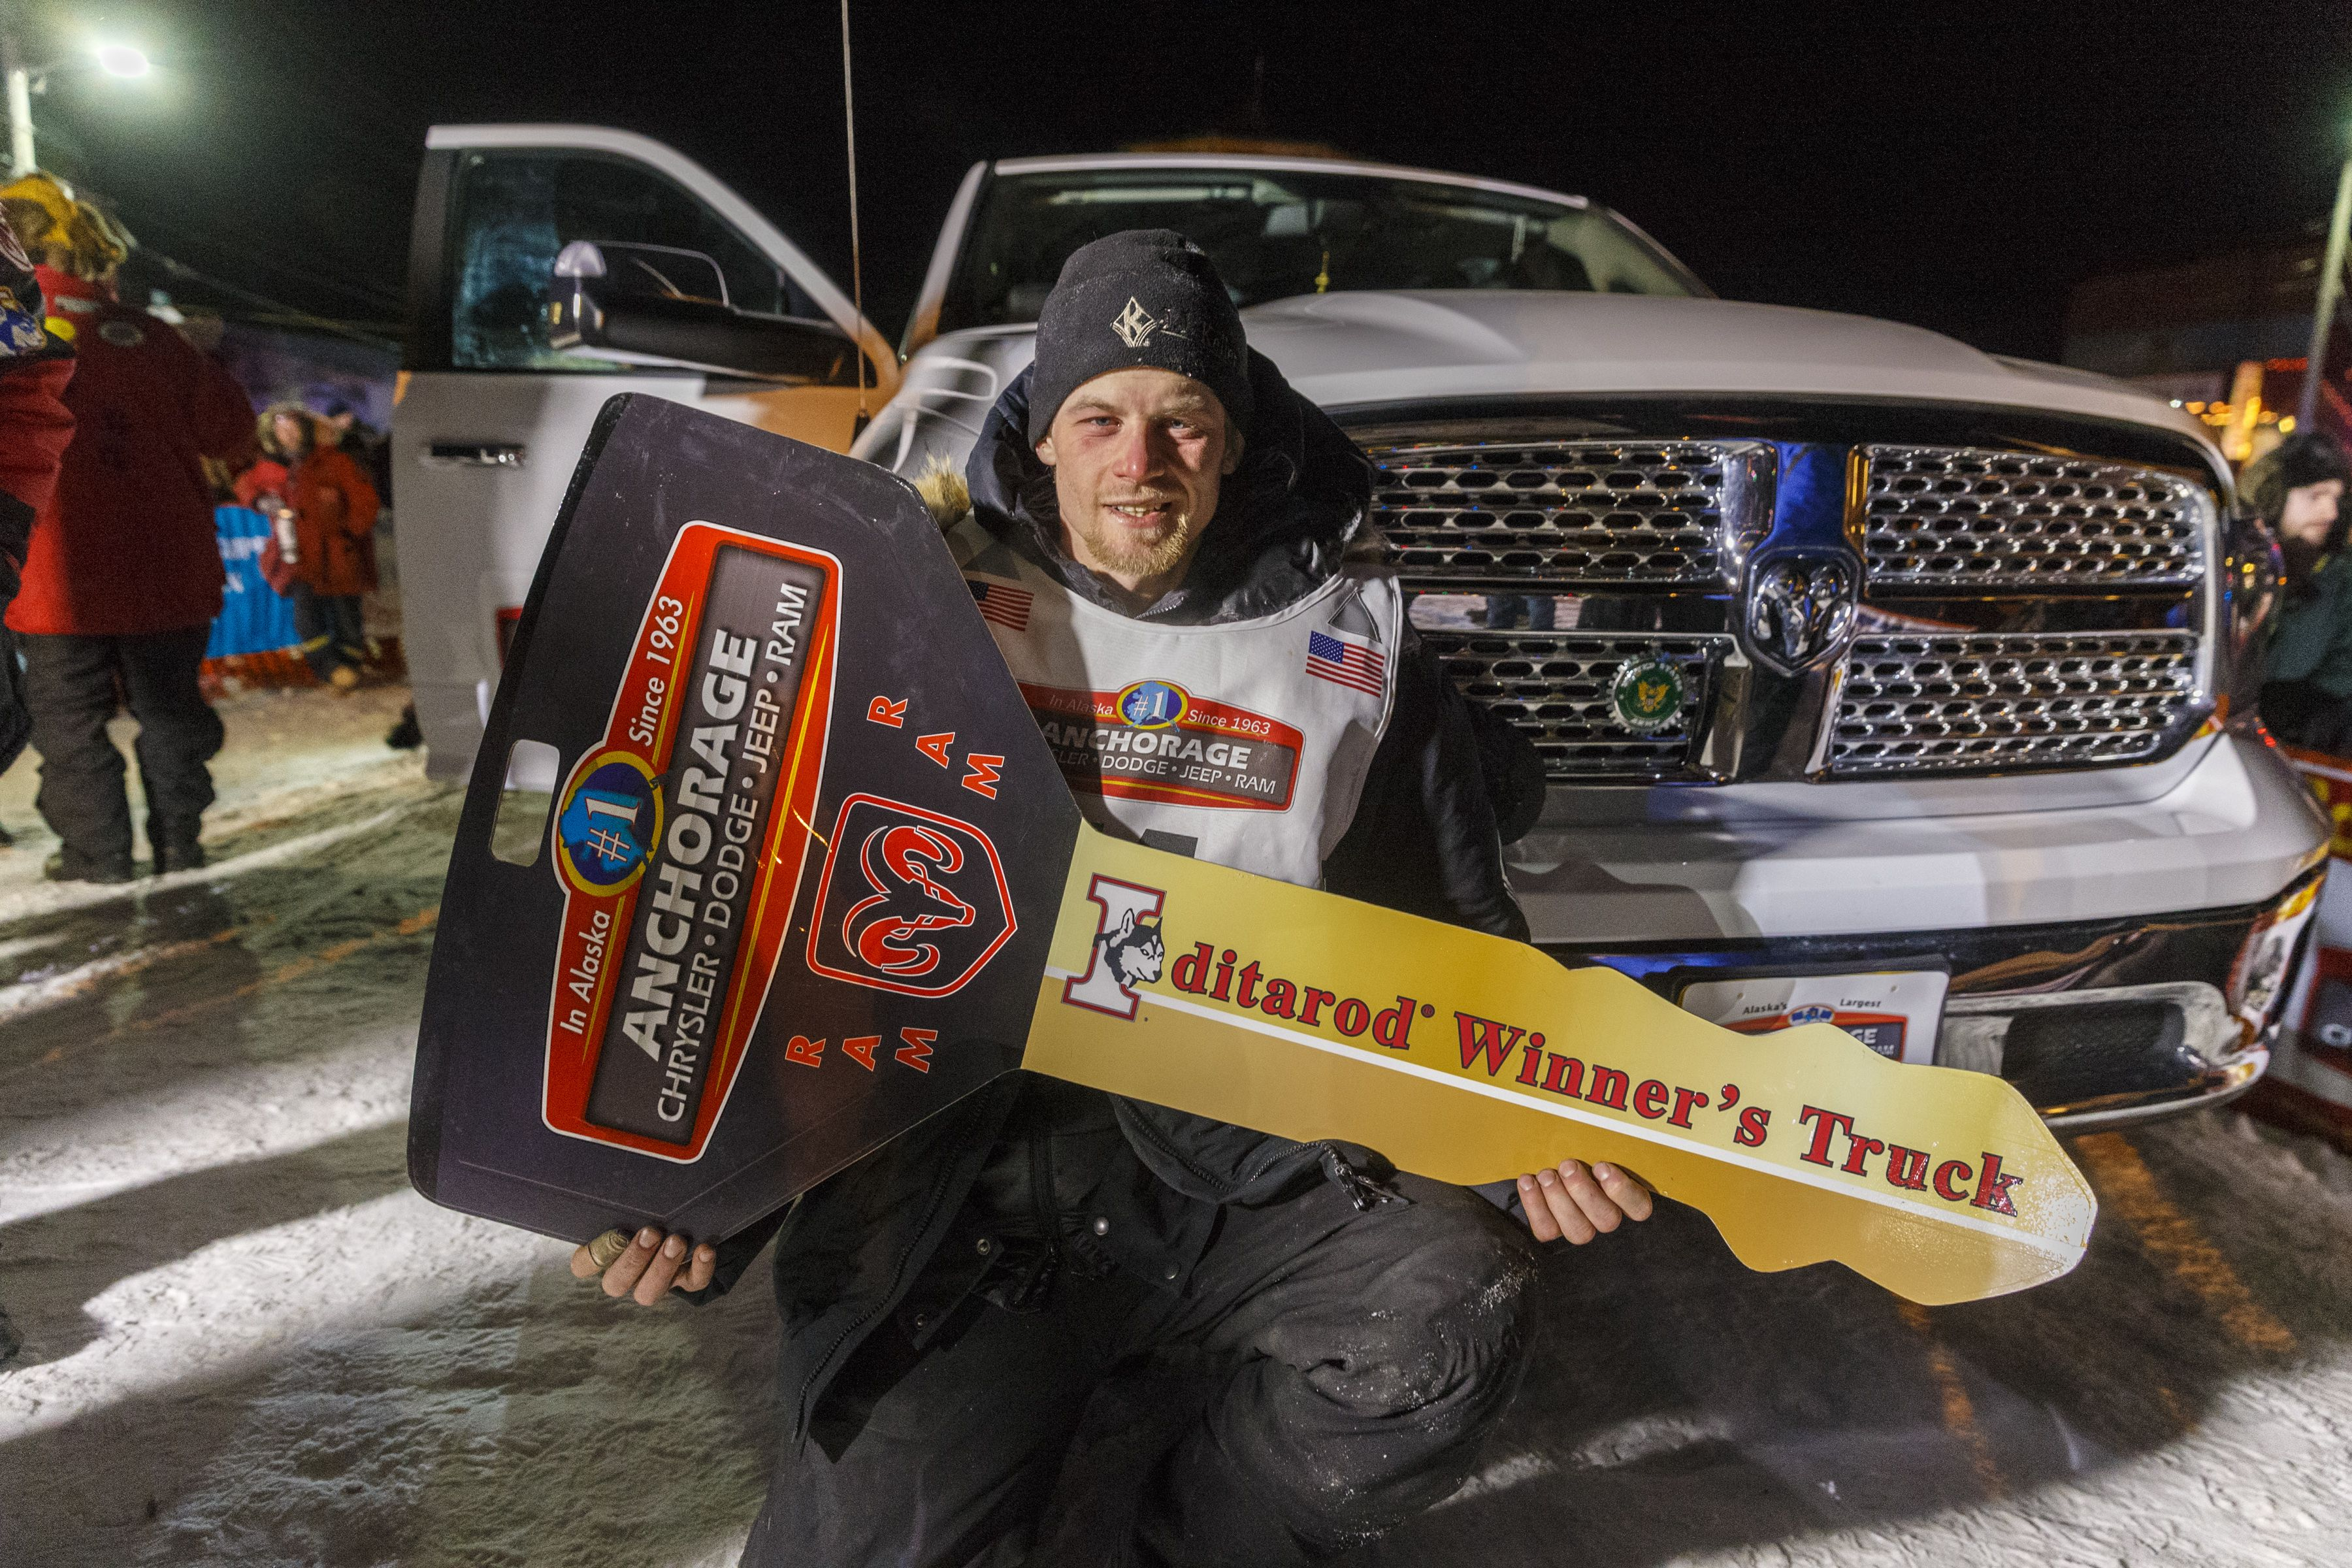 Congratulations To Dallas Seavey The 2014 Iditarod Winner And Recipient Of The Anchorage Chrysler Dodge Official T Iditarod Chrysler Dodge Jeep Monster Trucks